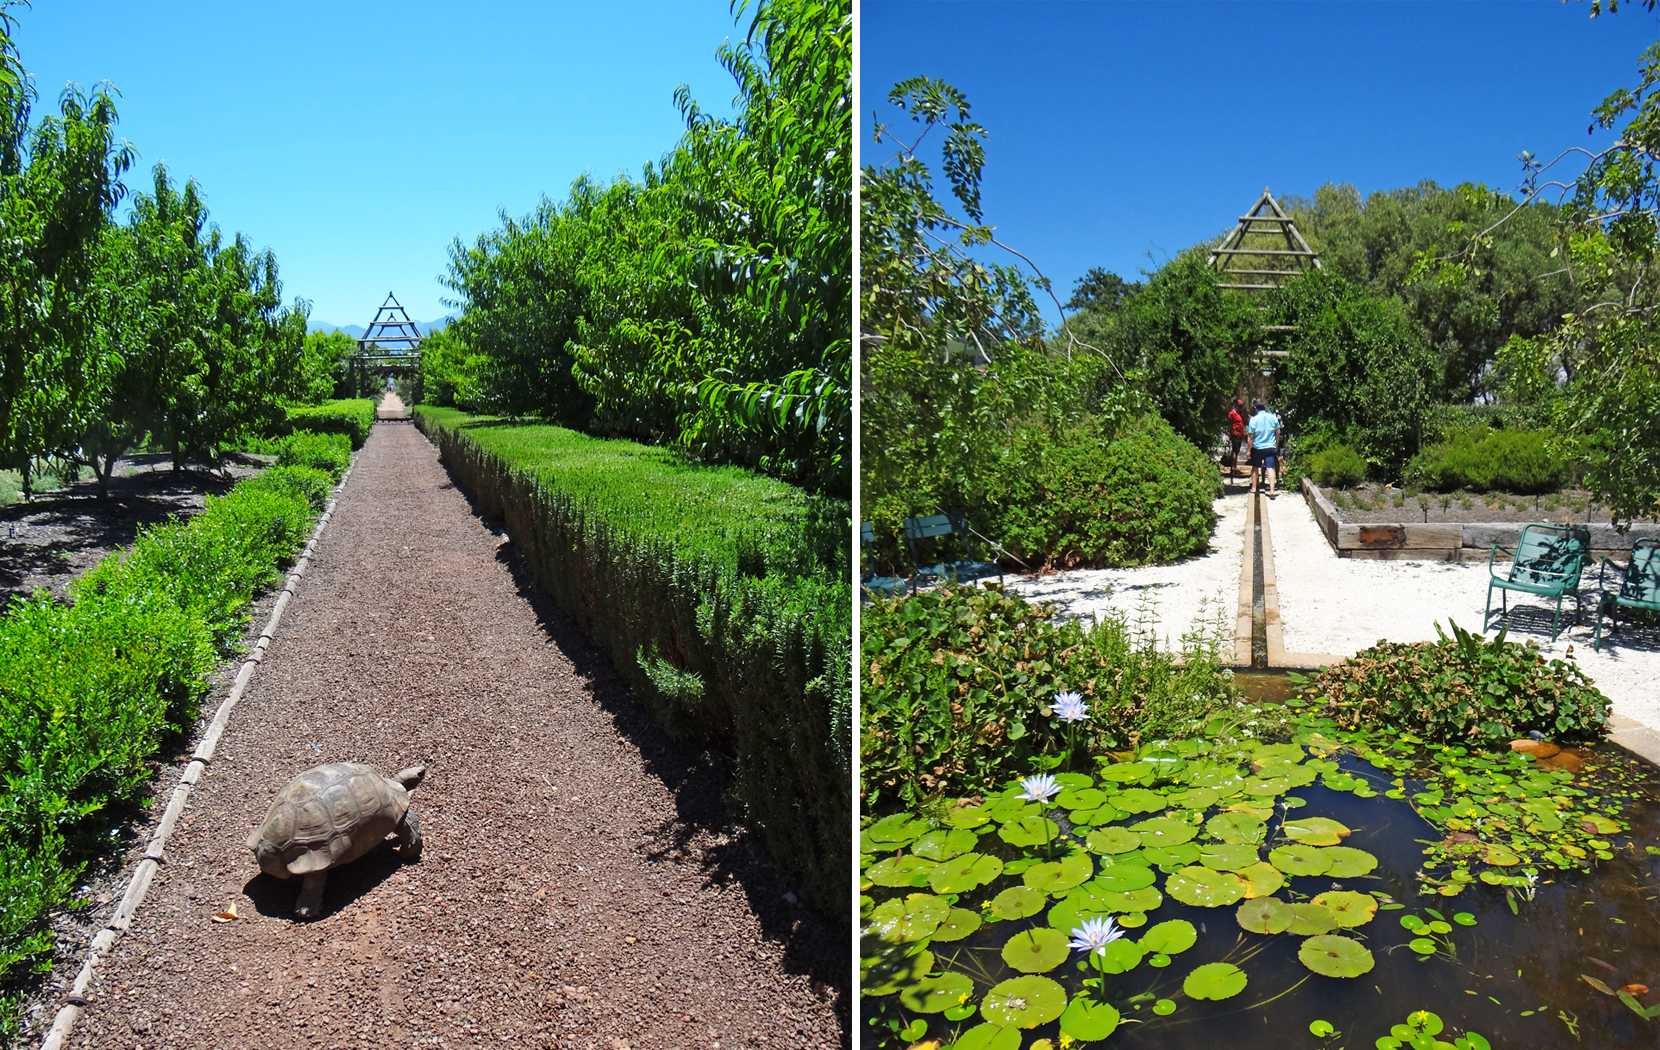 The Babylonstoren garden is at the heart of the farm